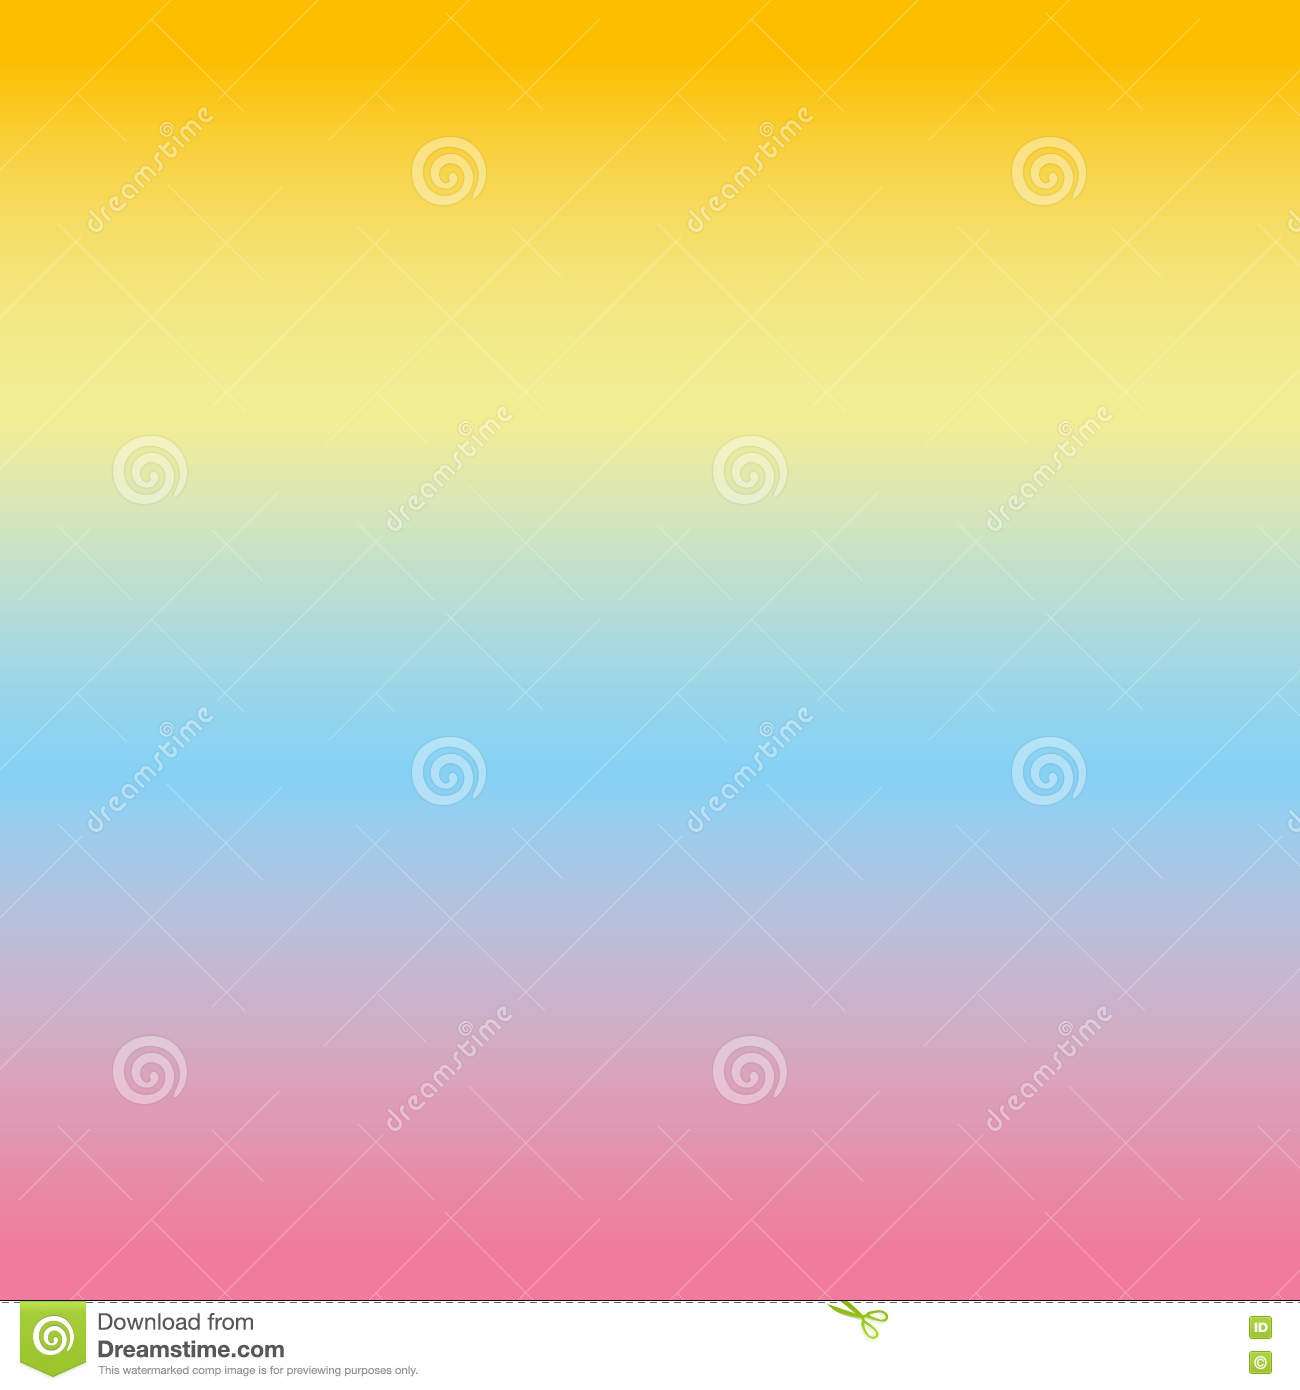 Colorful Gradient, Color Background. Wallpaper, Pink, Blue, Yellow ...